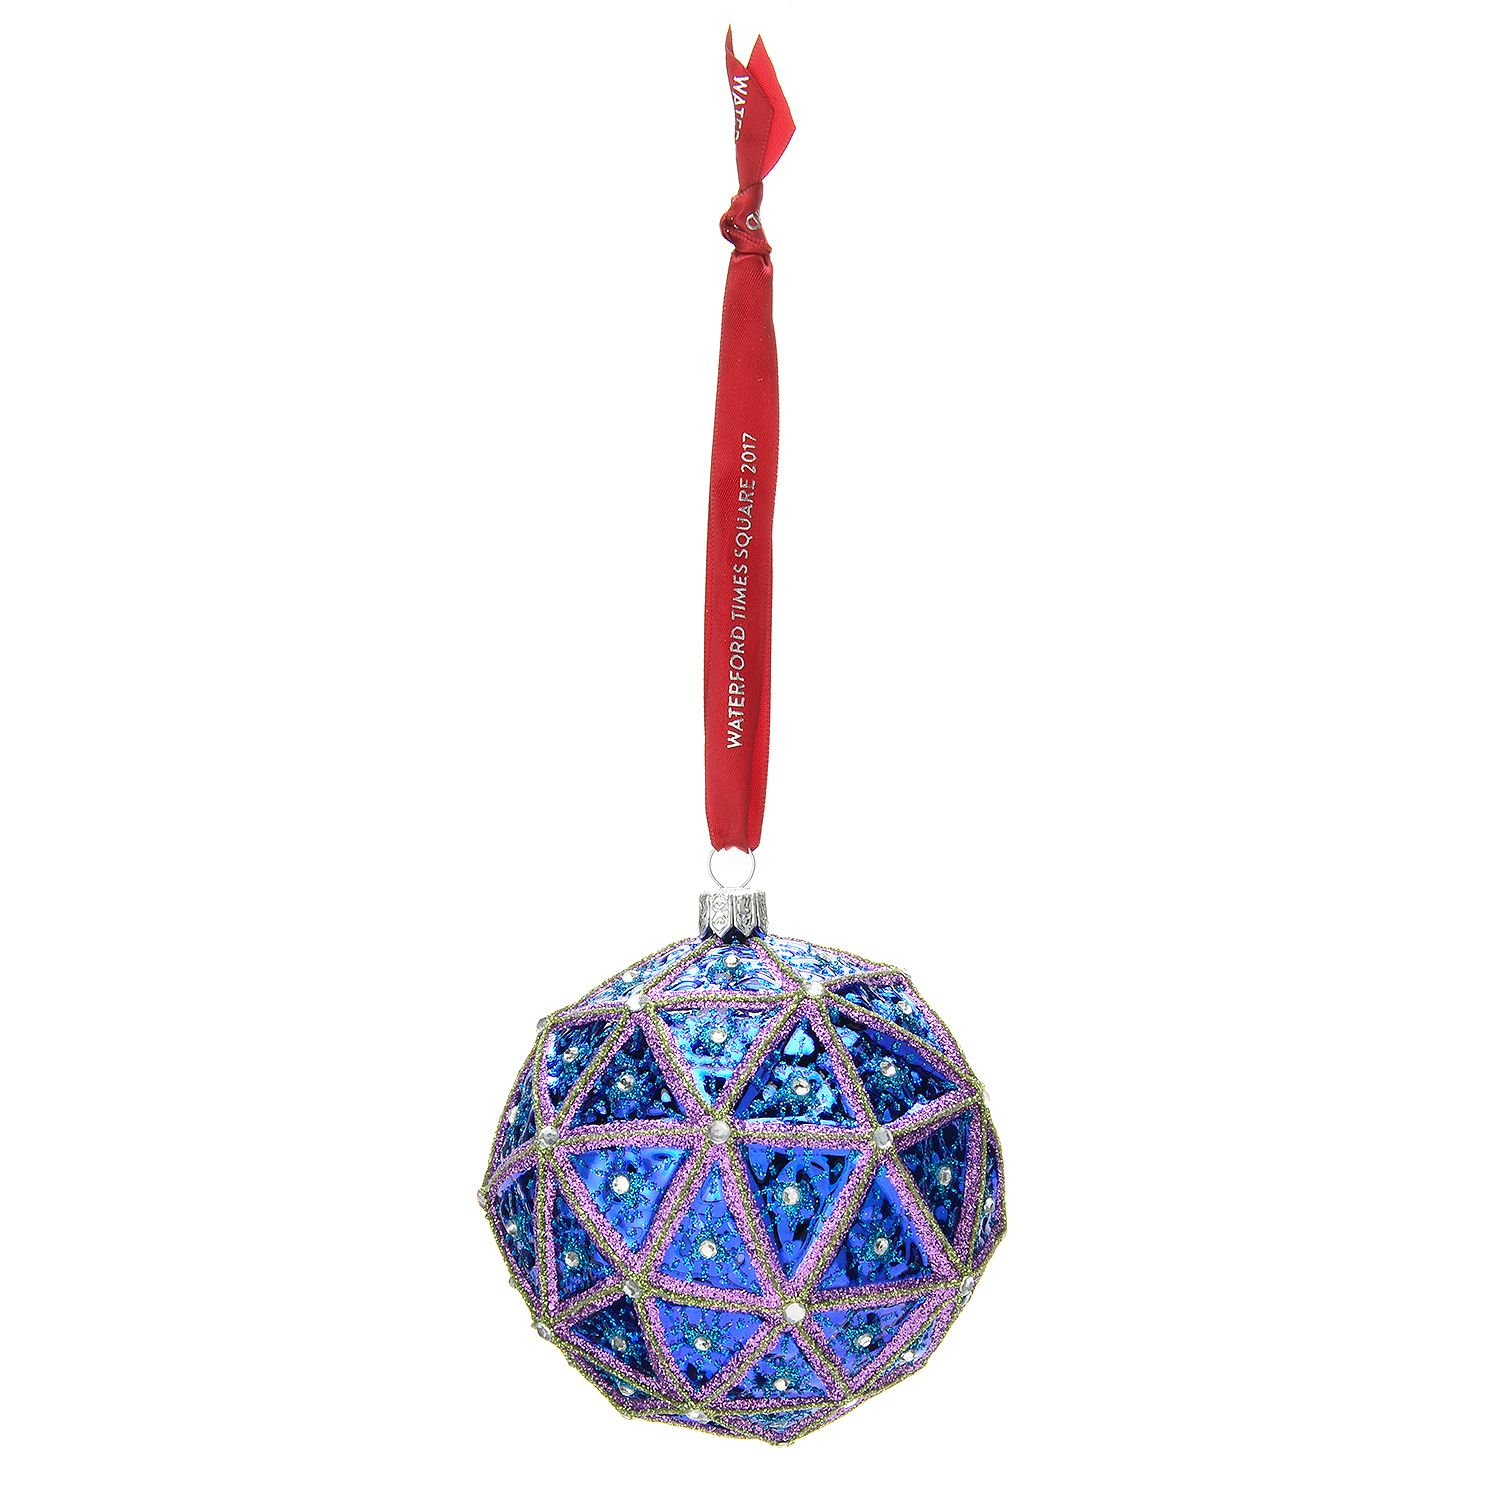 Waterford Gift of Kindness Ornament